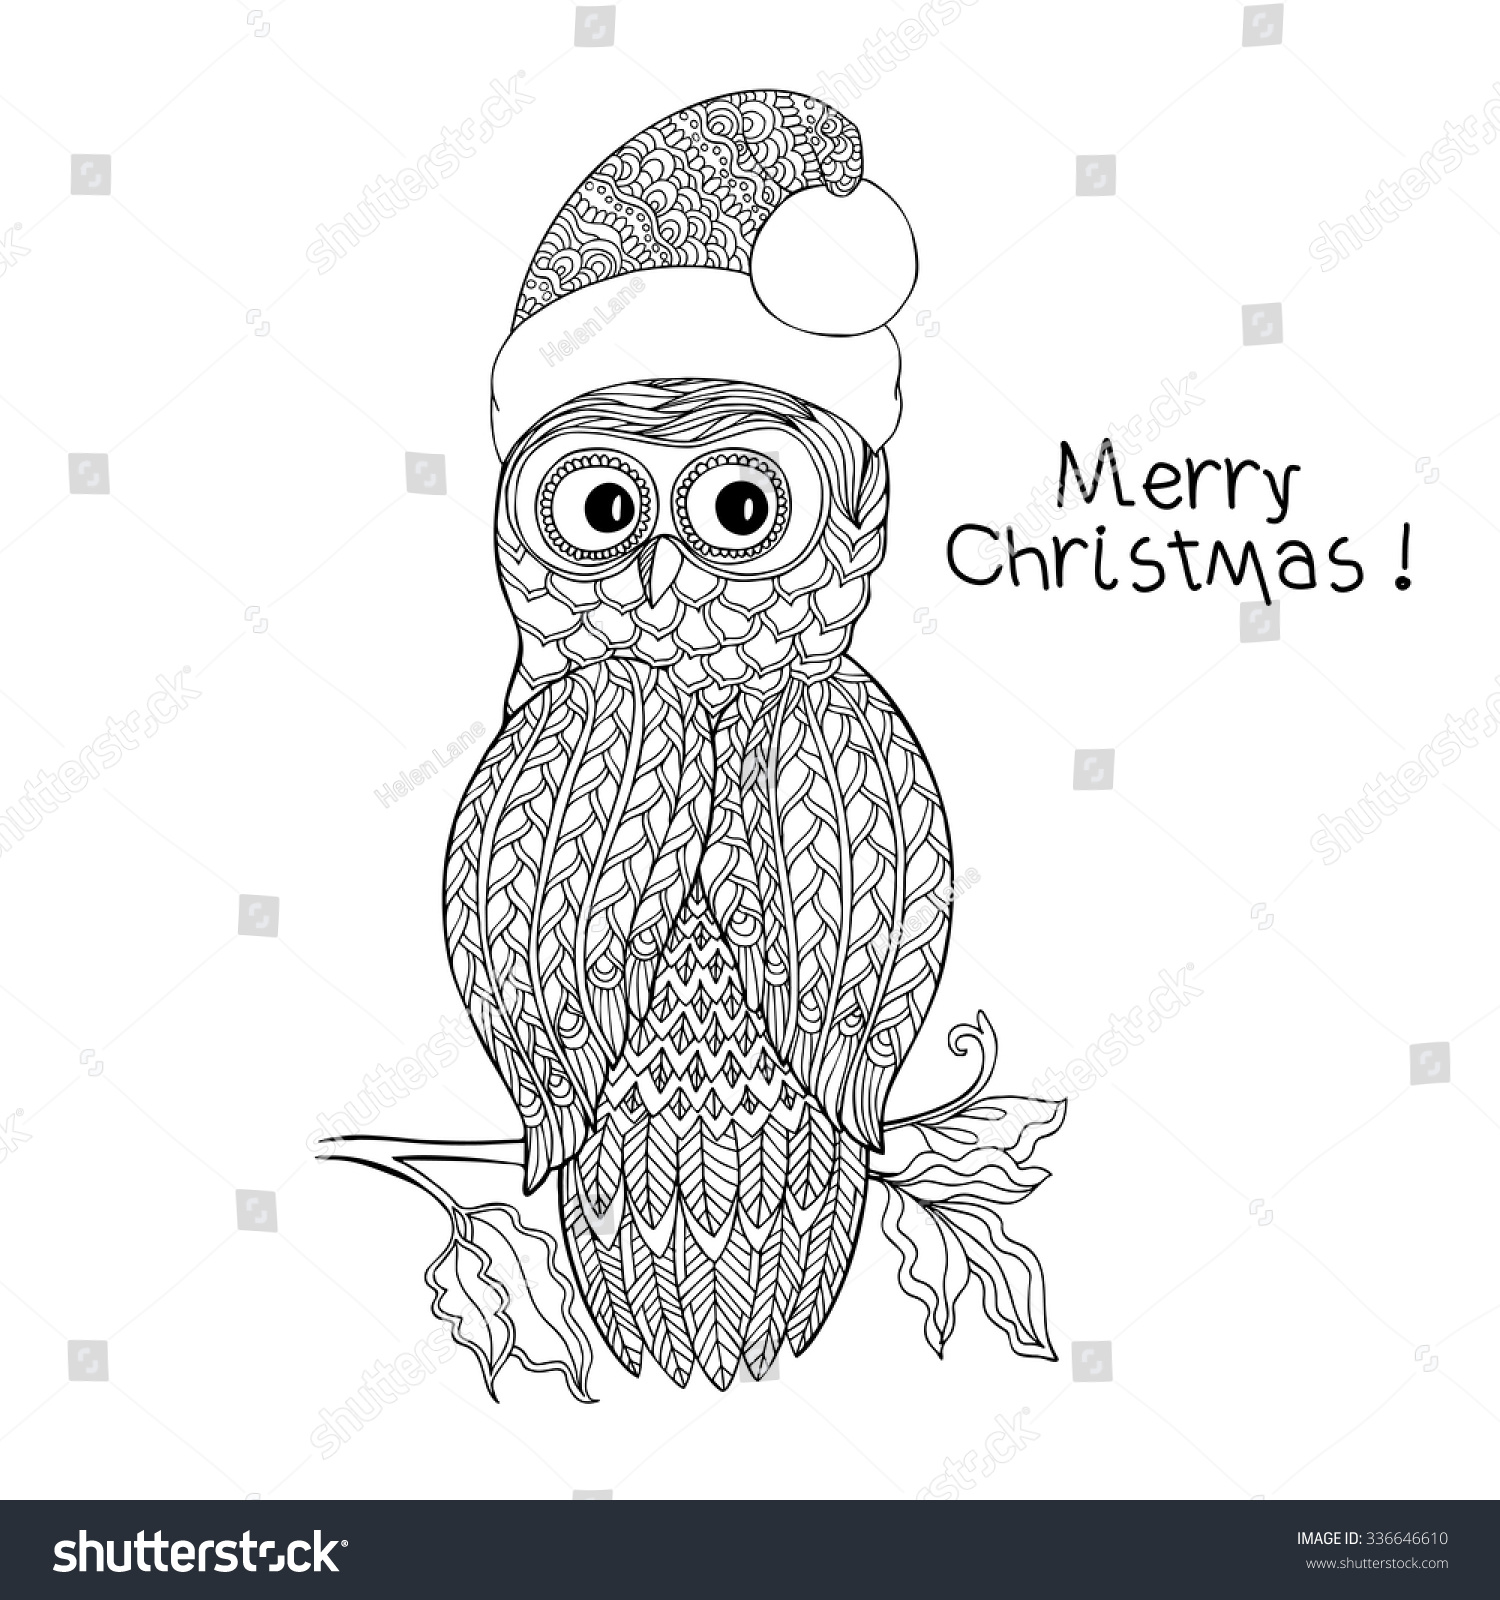 Christmas Christmas Coloring Pages Of Owls In HatsChristmas